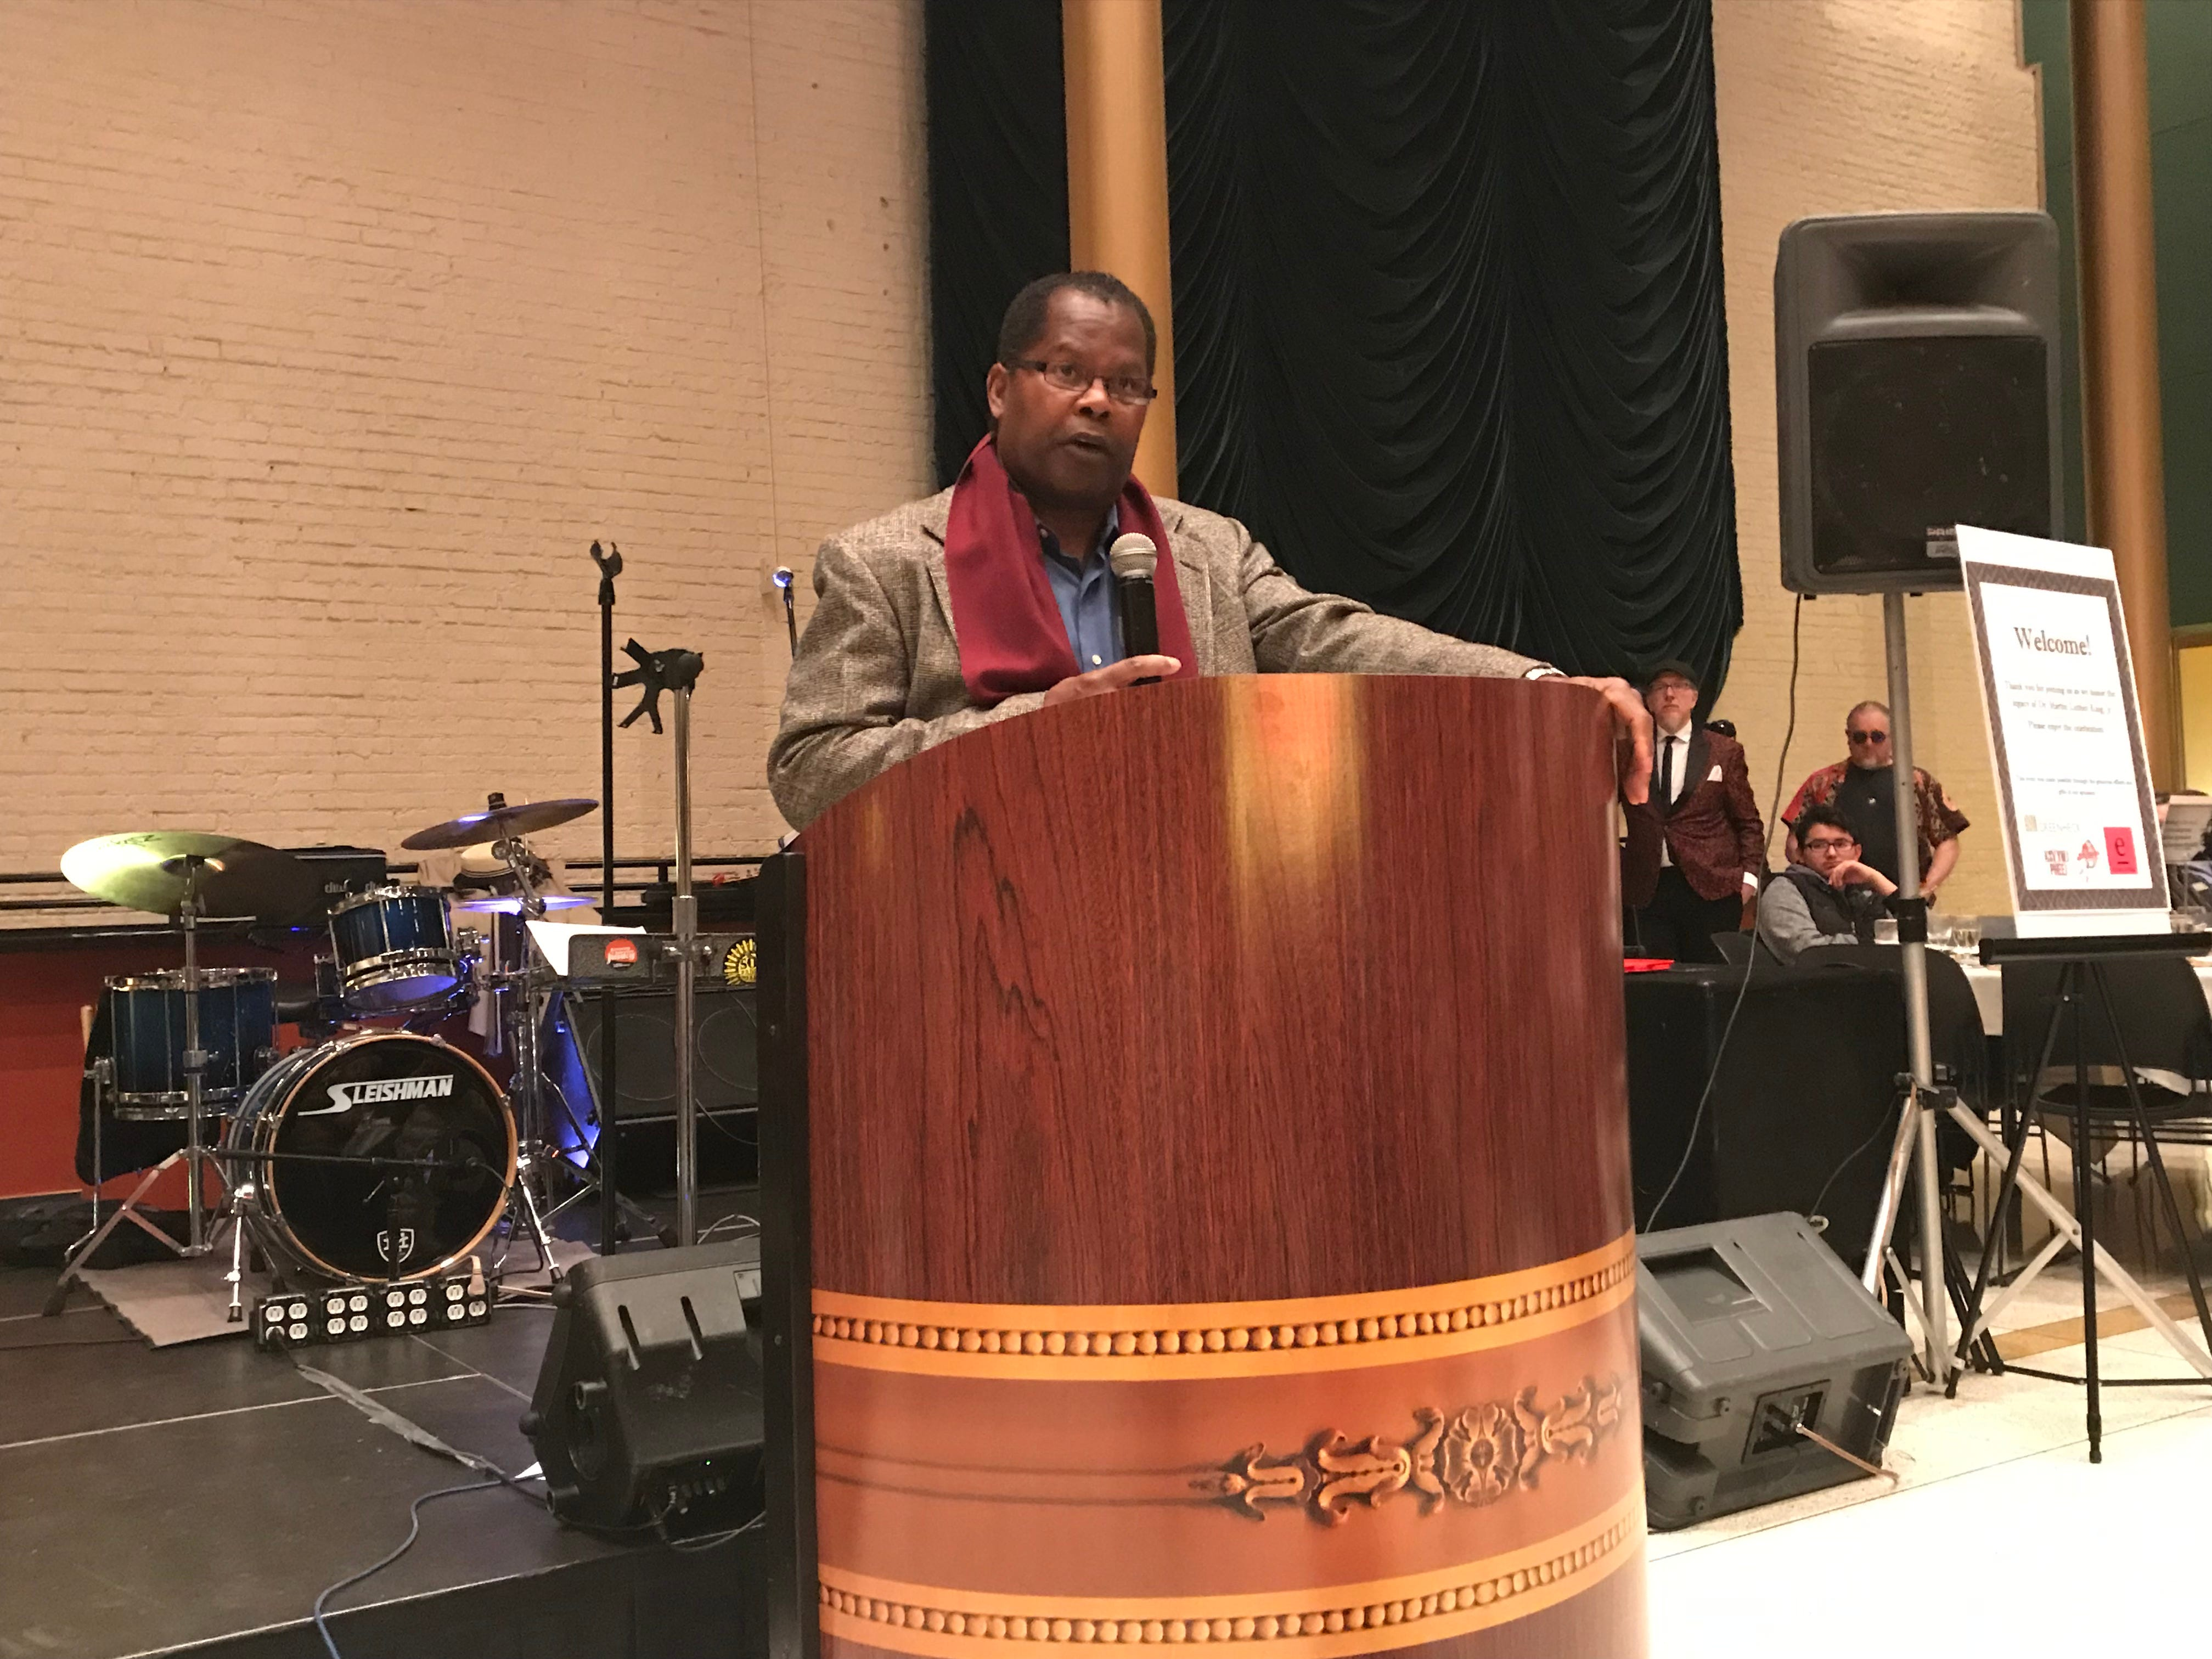 Darryl Mayfield speaks at the MLK Day celebration at the Grand Theater in Wausau.